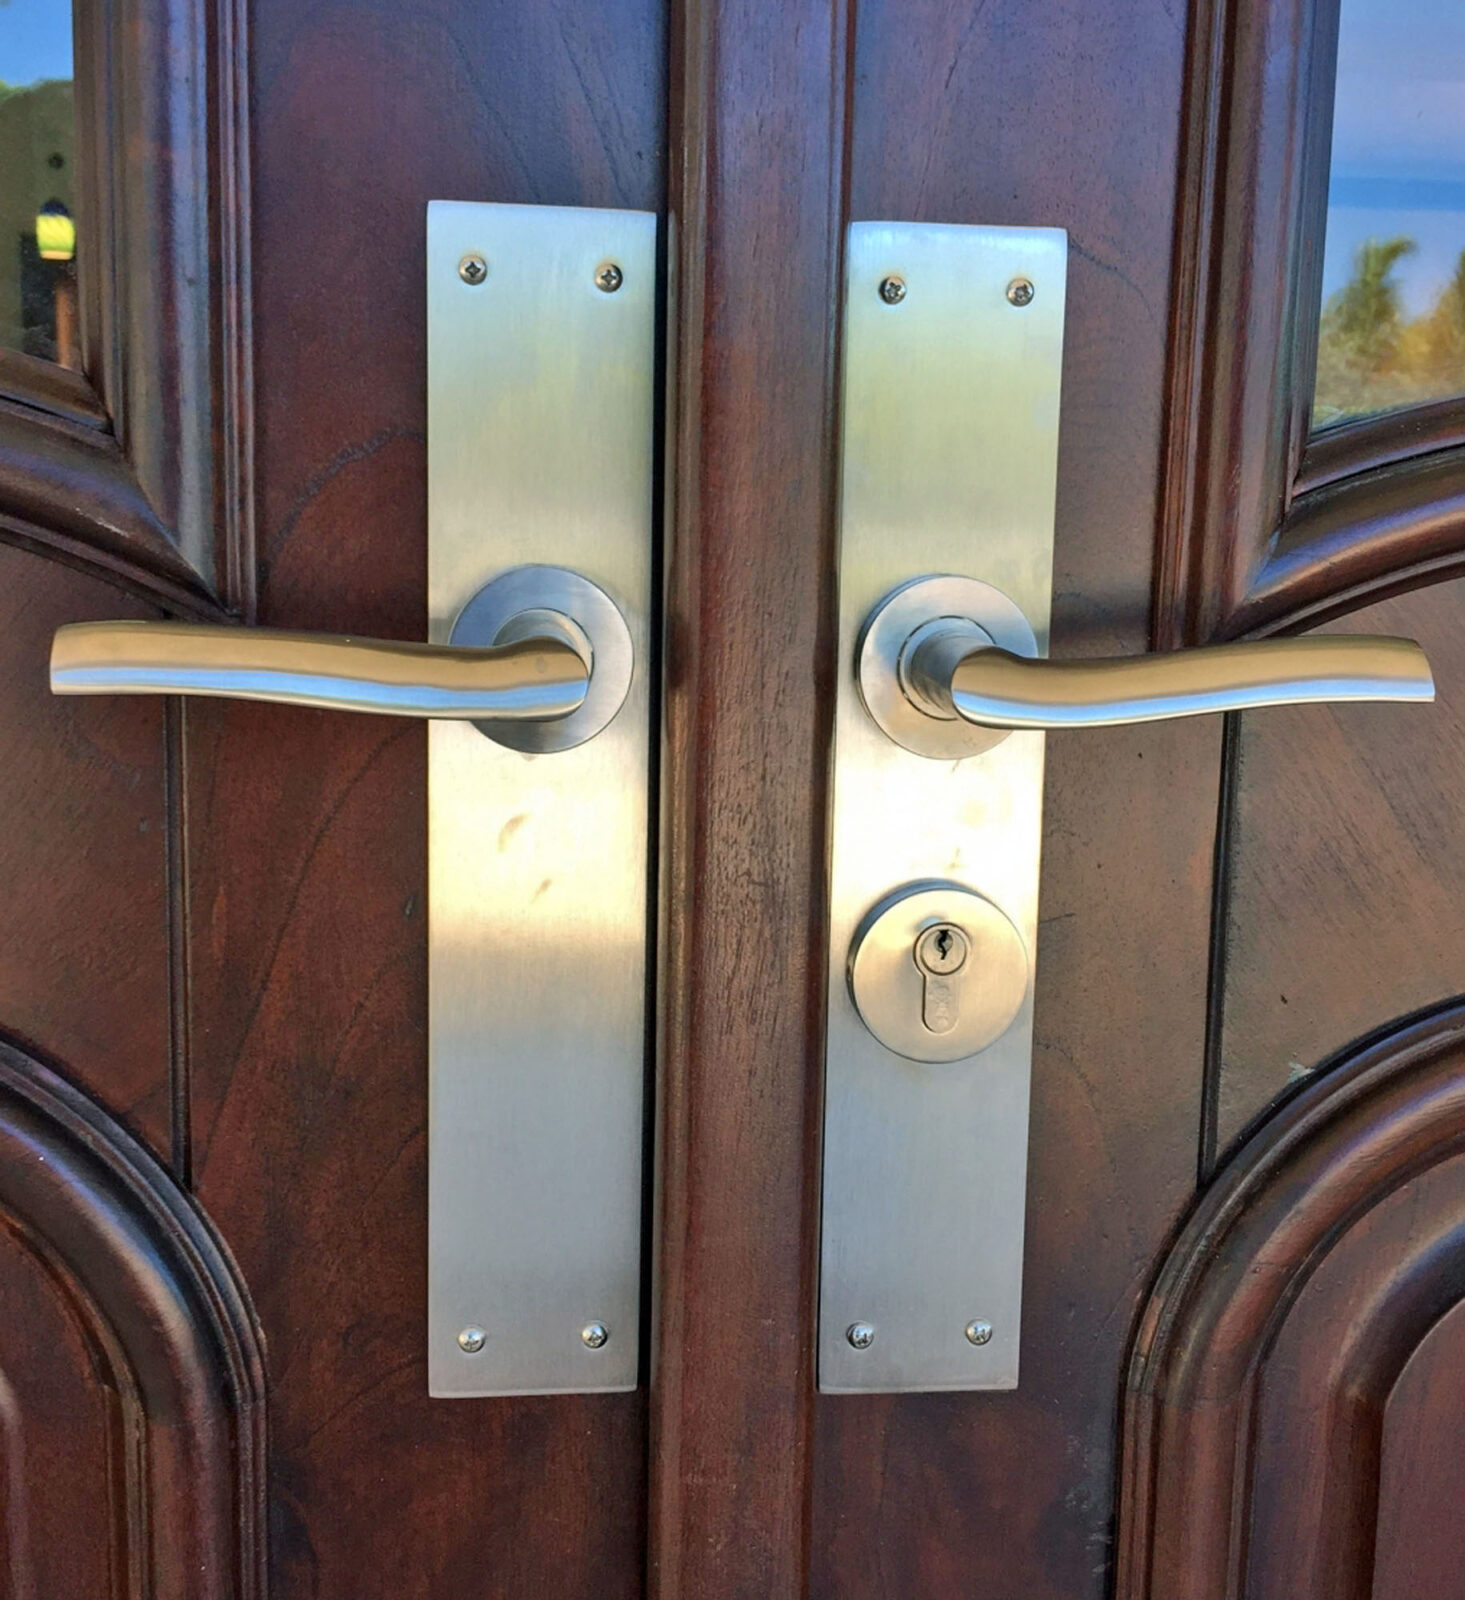 Key Colony Stainless Steel Handles